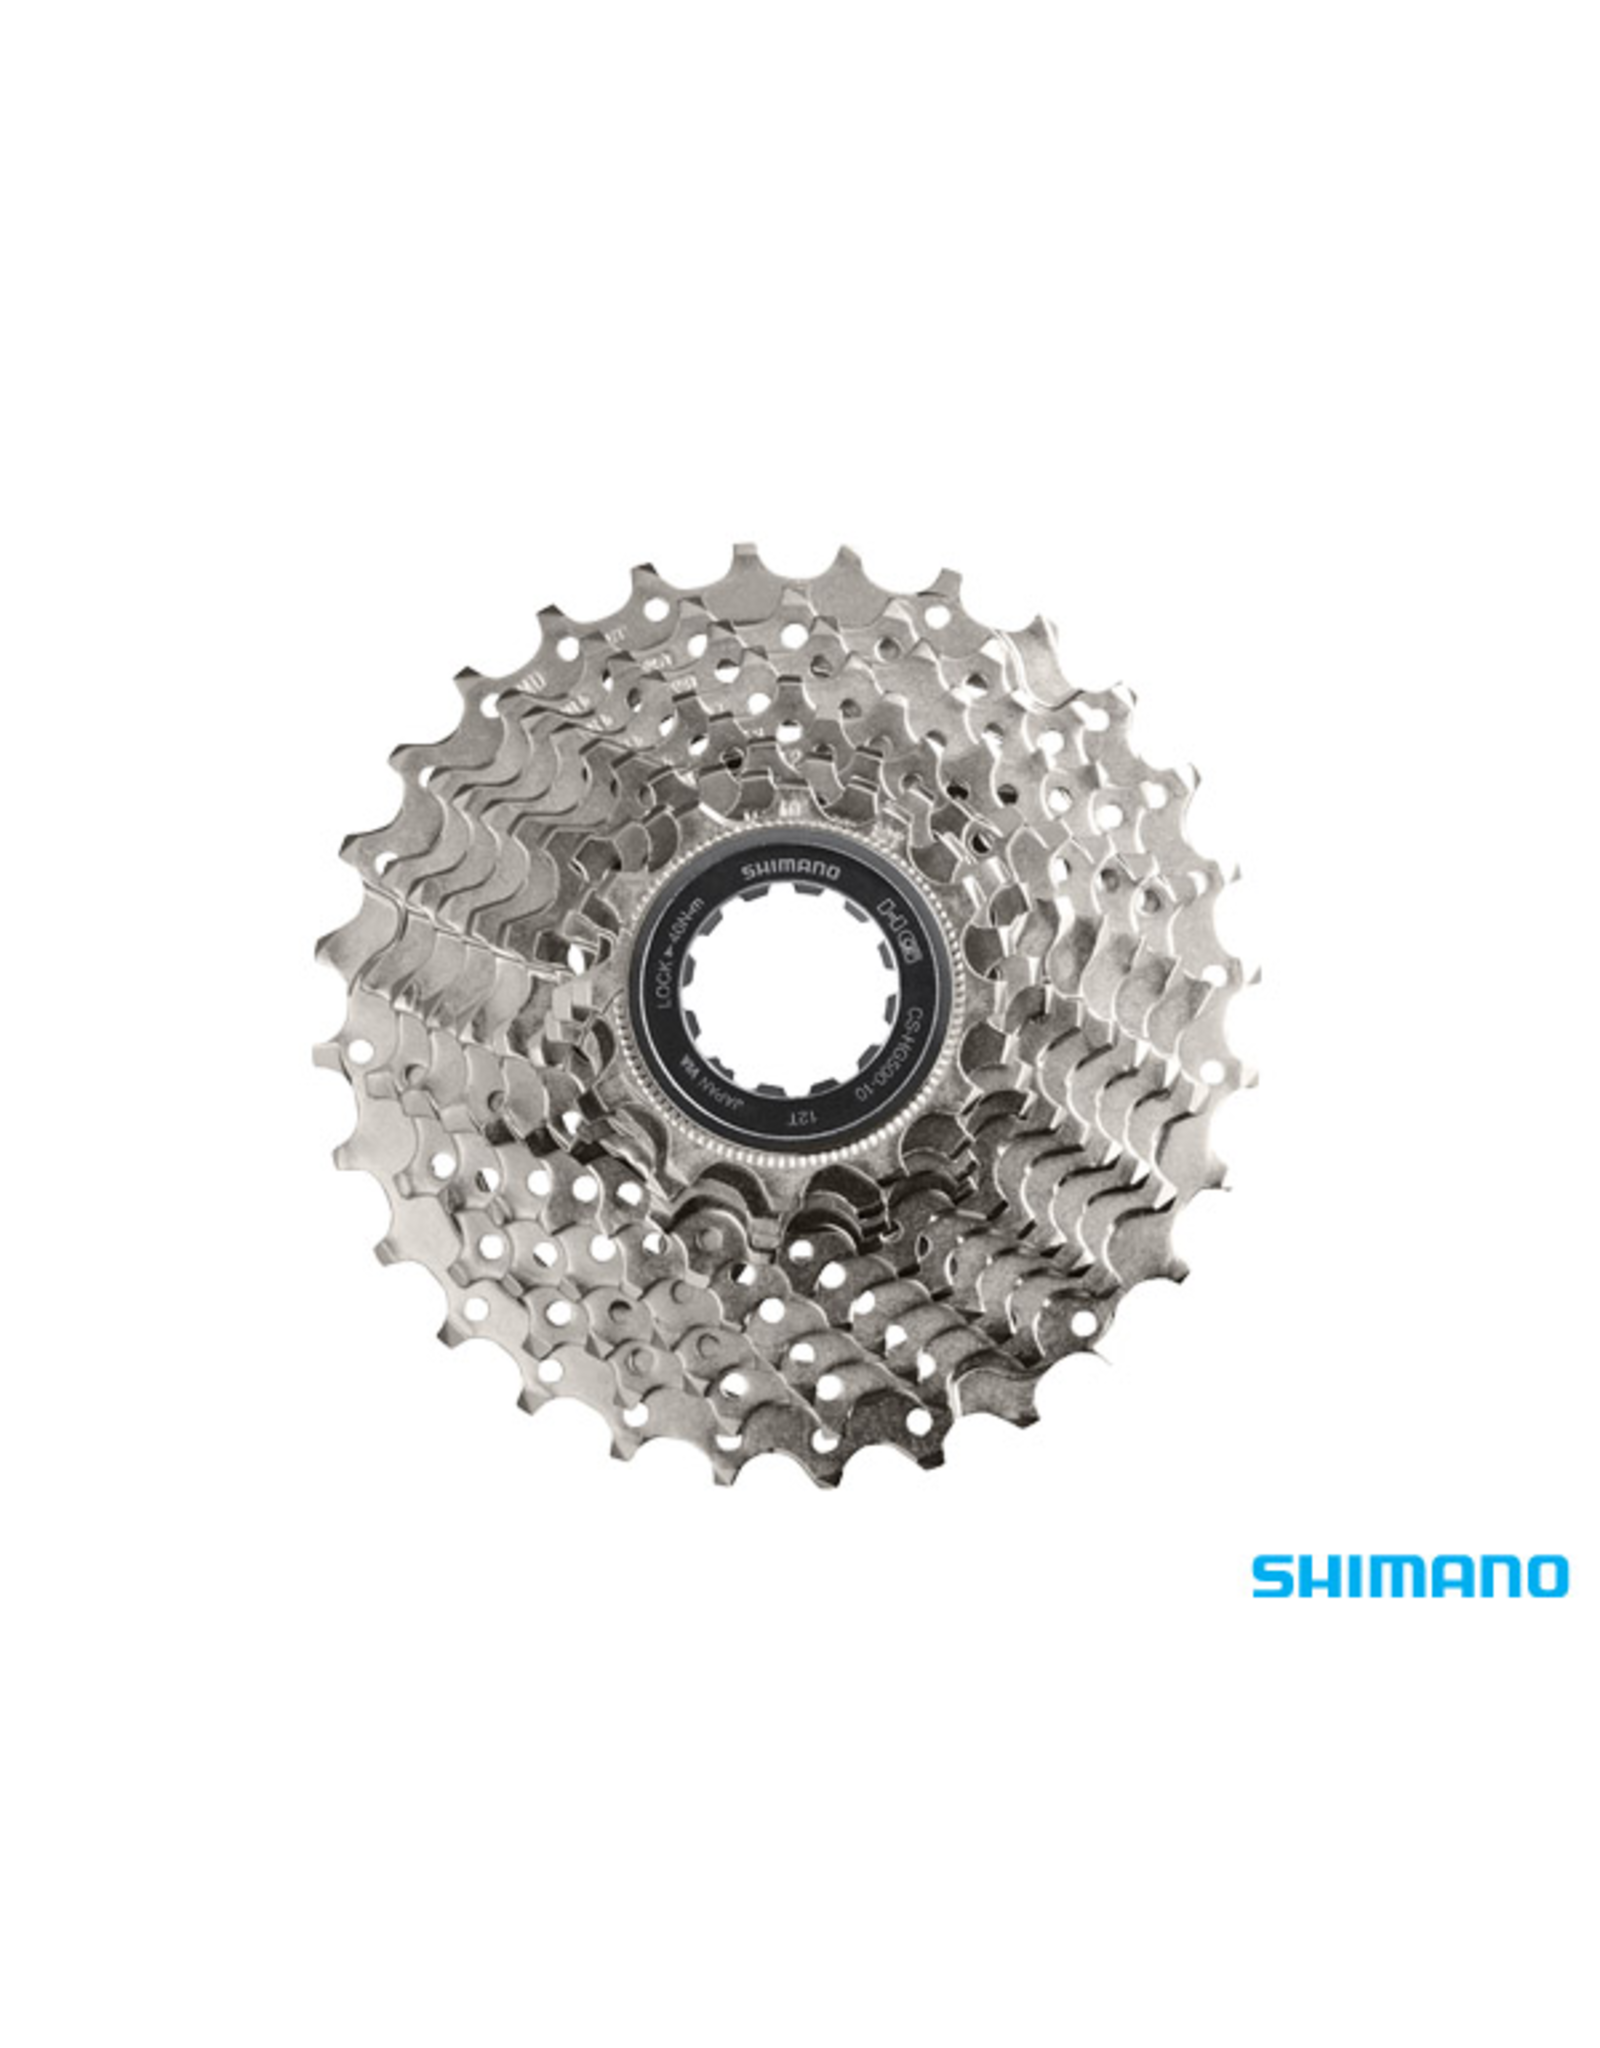 Shimano CASSETTE SHIMANO DEORE CS-HG500 10 SPEED 11-25